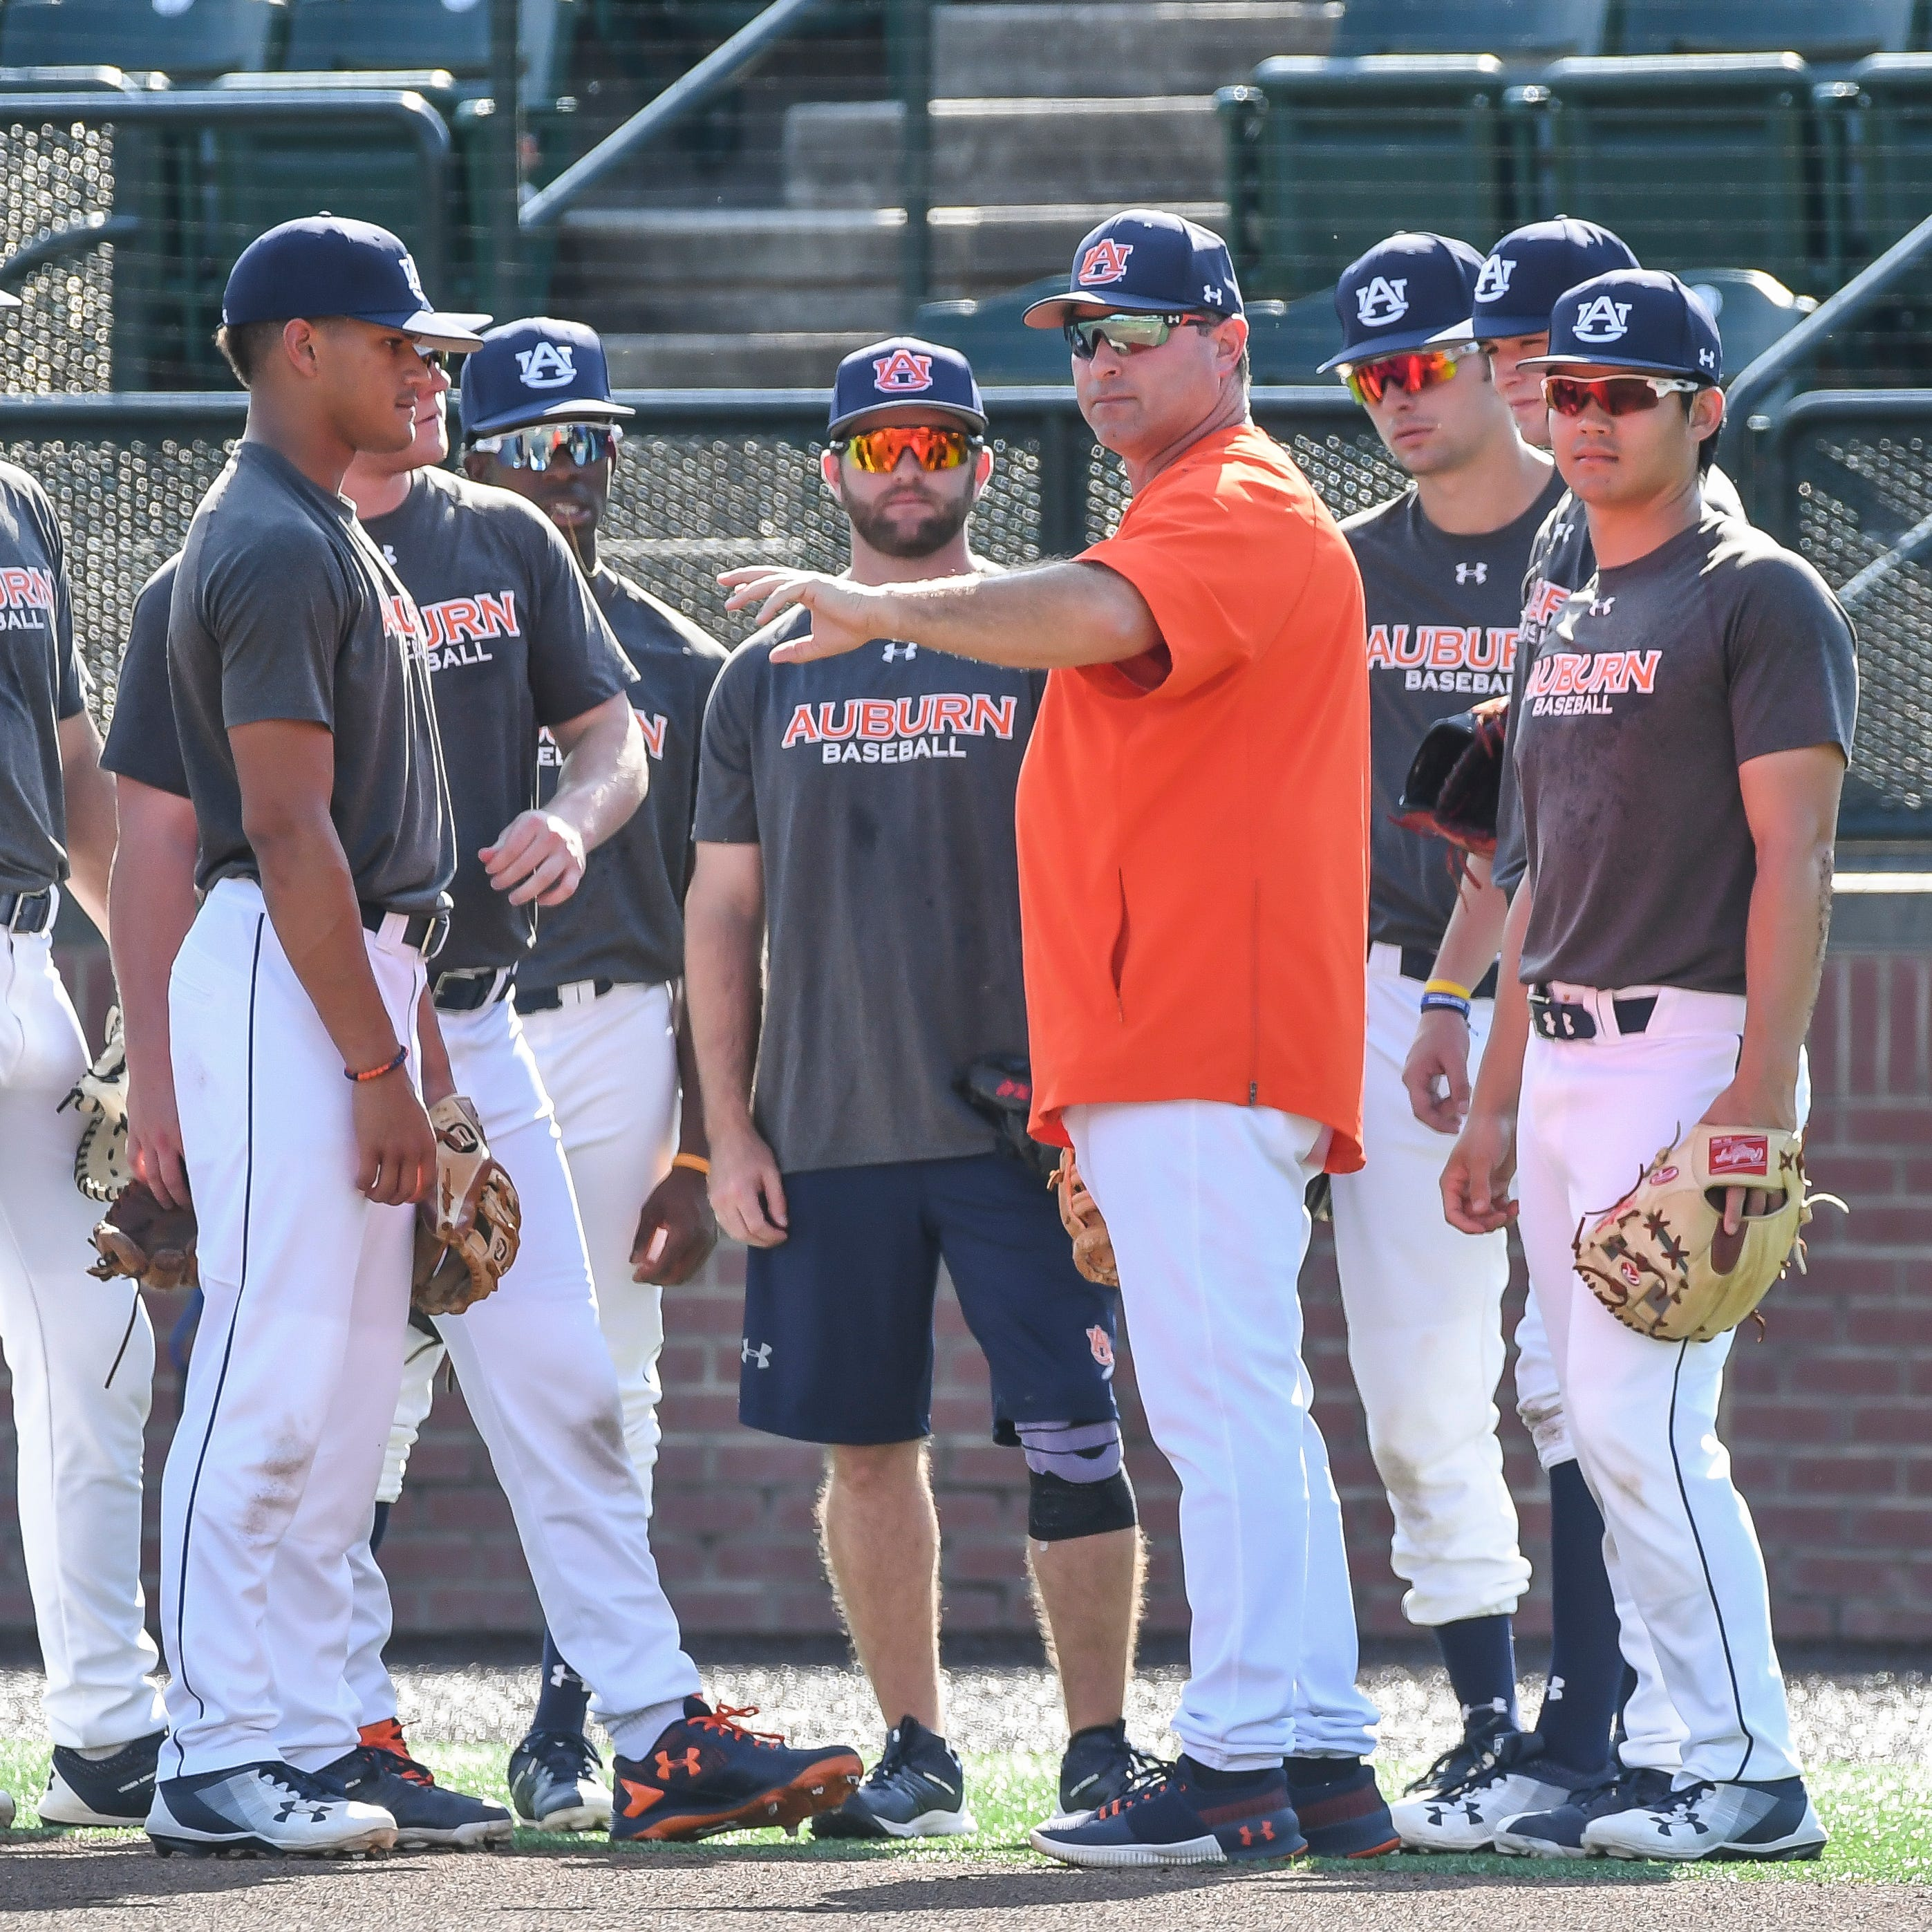 How Auburn baseball plans to use athlete management, analytics to gain extra edge in quest for Omaha